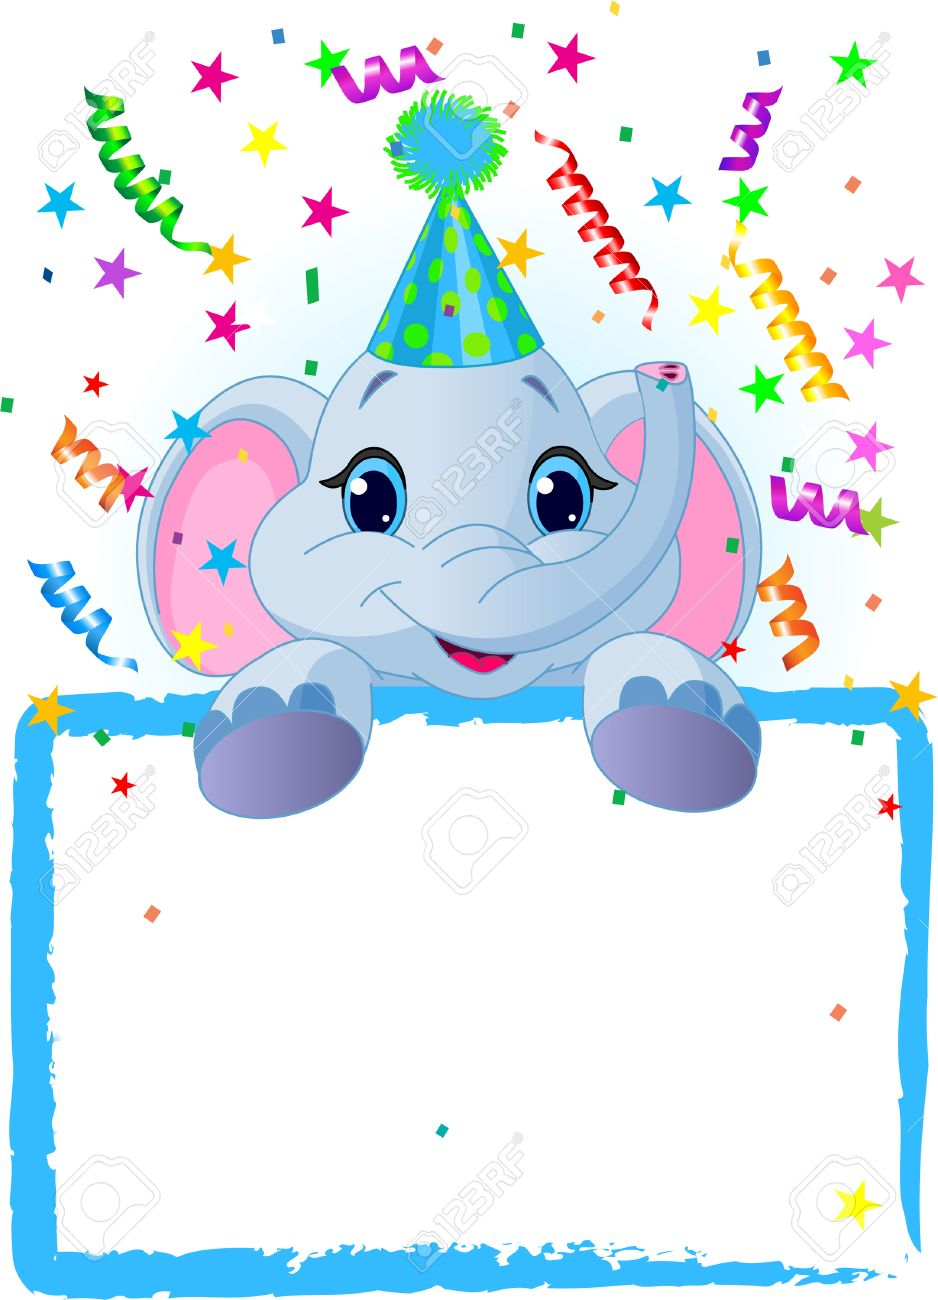 Adorable Baby Elephant Wearing A Party Hat, Looking Over A Blank Starry Sign With Colorful Confetti Stock Vector - 6568365